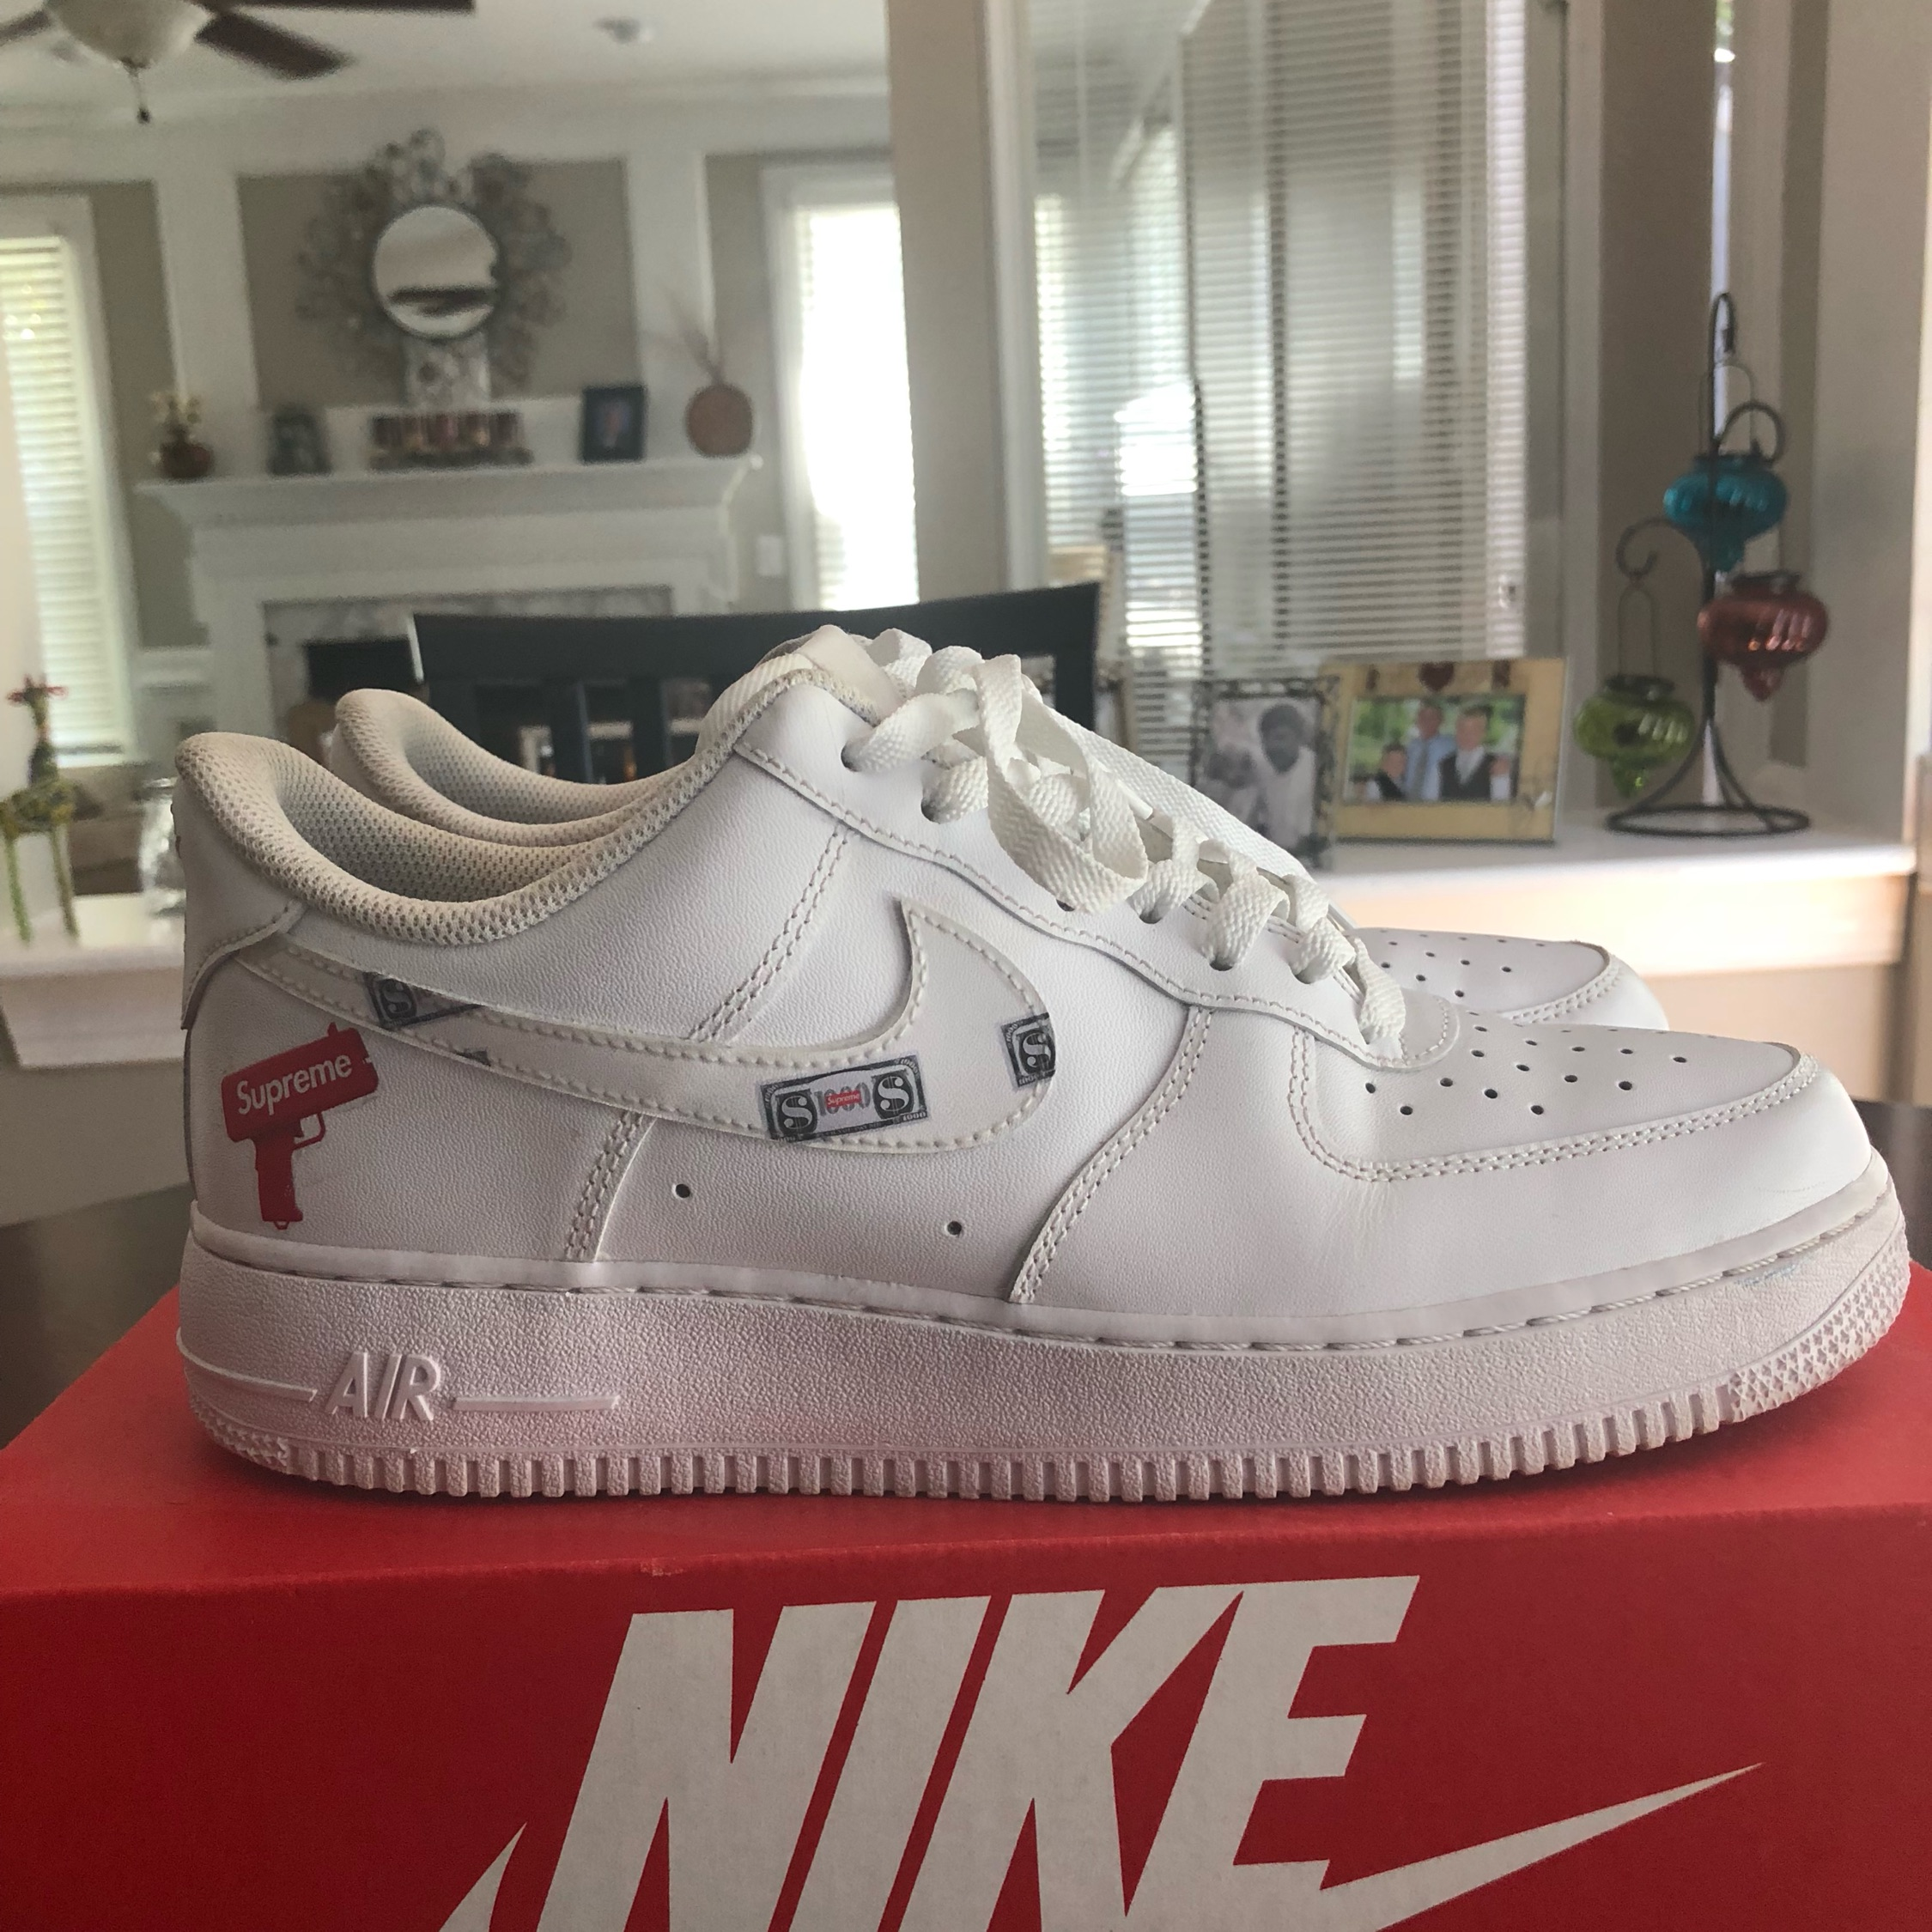 Custom Supreme Air Force One Low Size 9.5